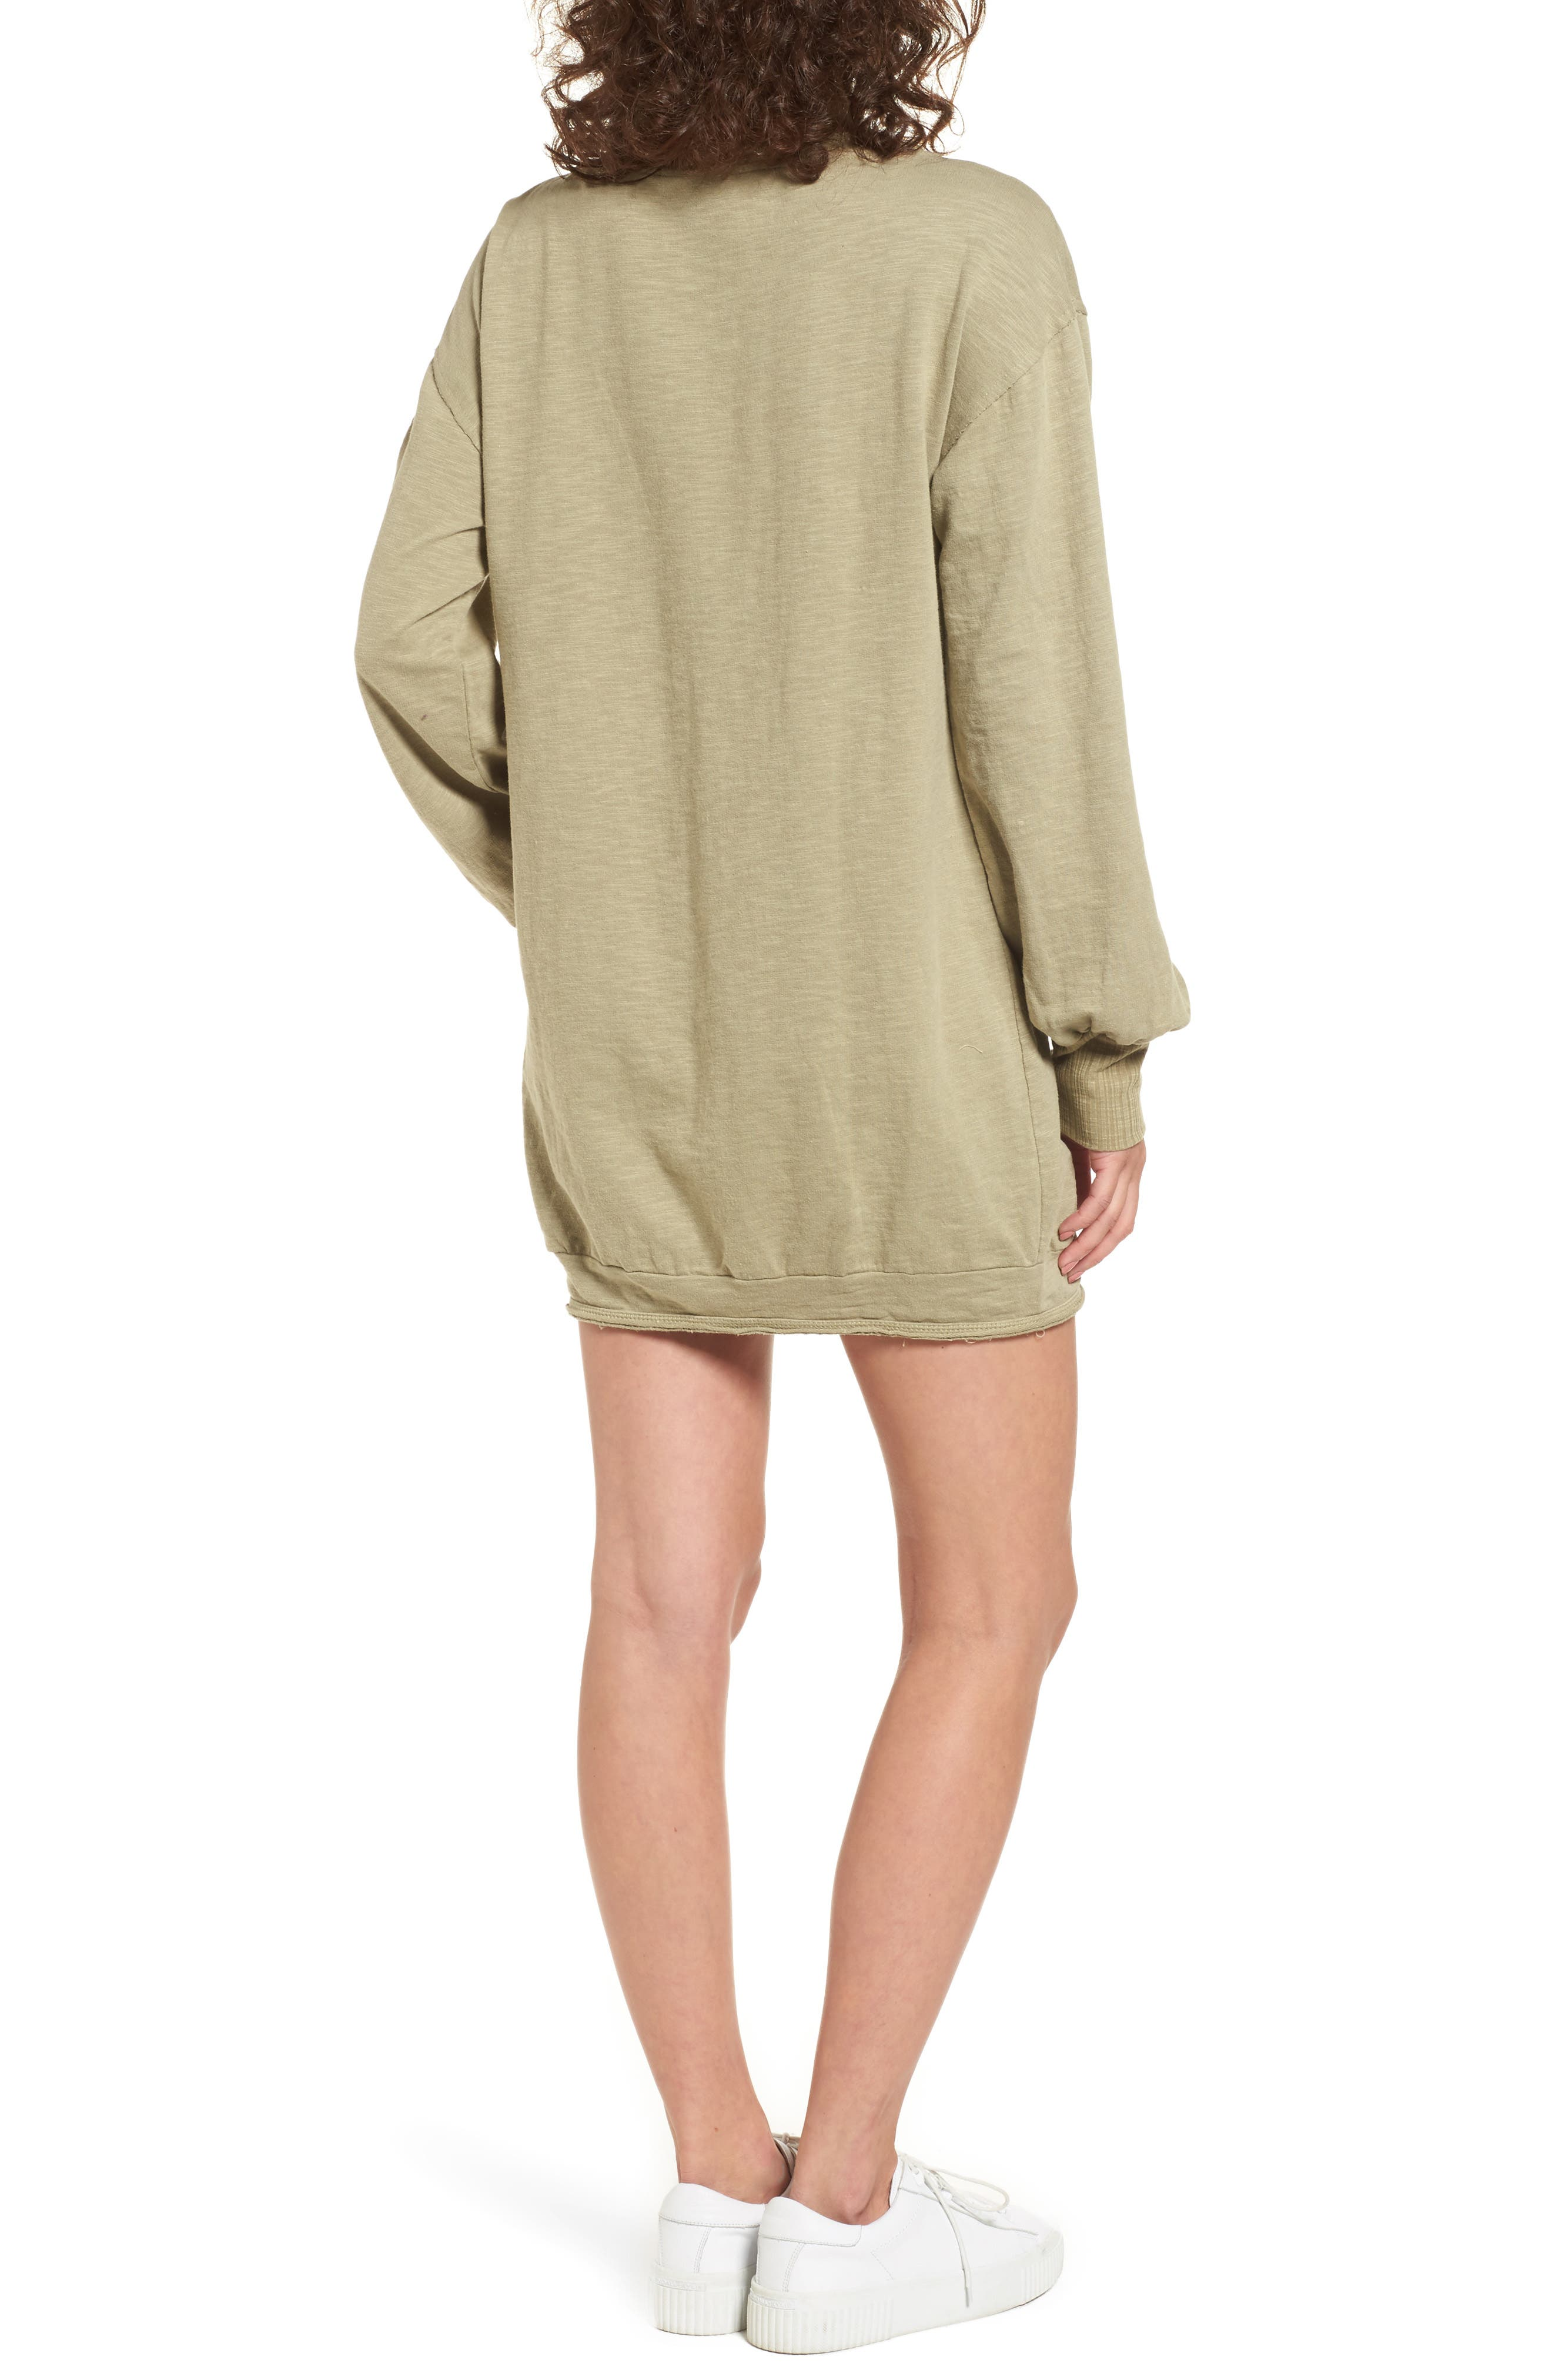 Mountains Fade Sweatshirt Dress,                             Alternate thumbnail 3, color,                             Sage